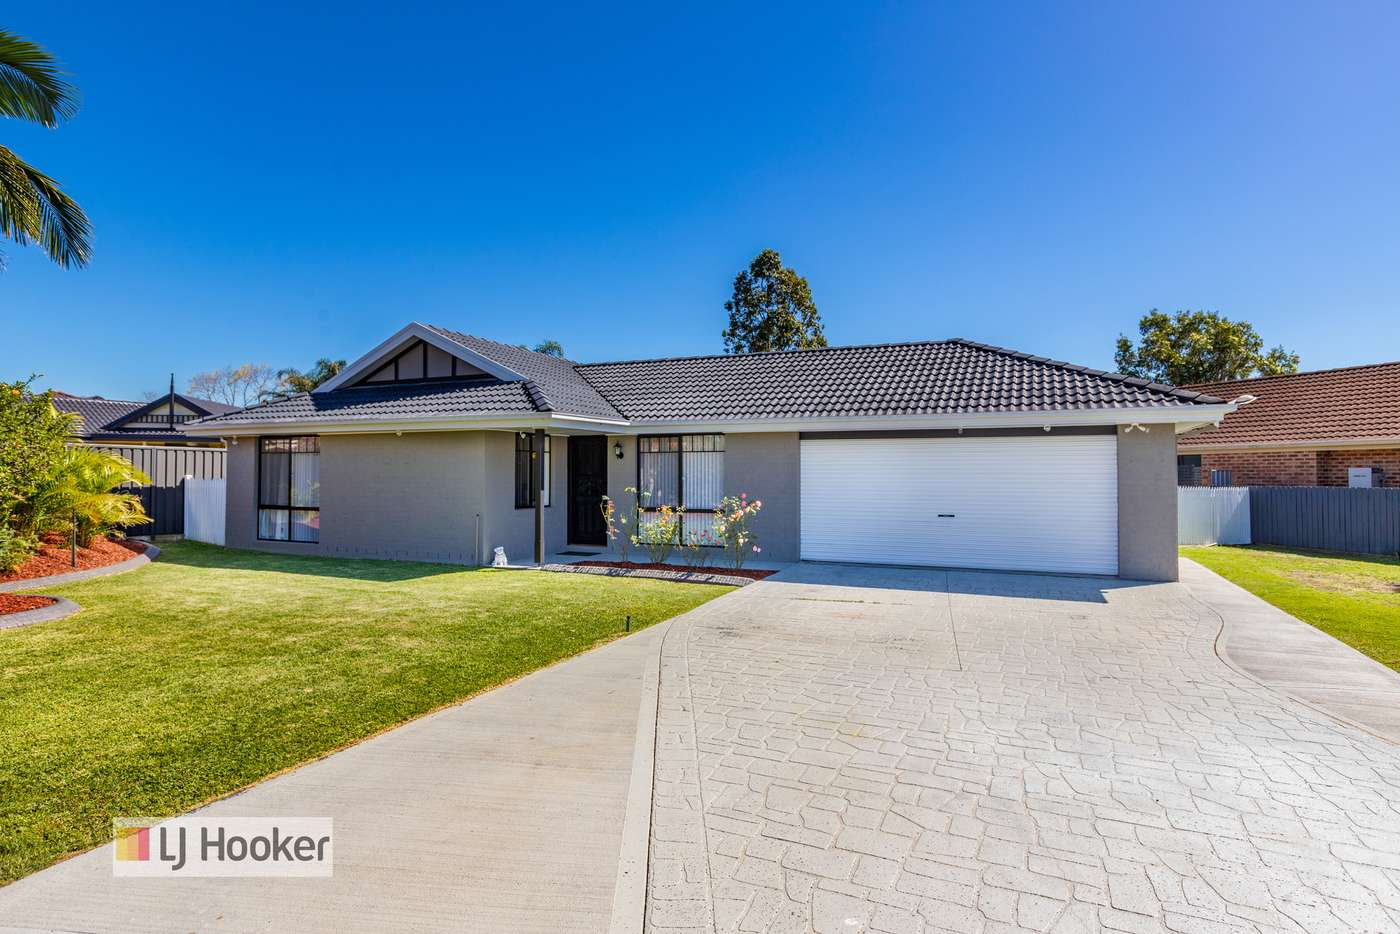 Main view of Homely house listing, 33 Joseph Sheen Drive, Raymond Terrace NSW 2324